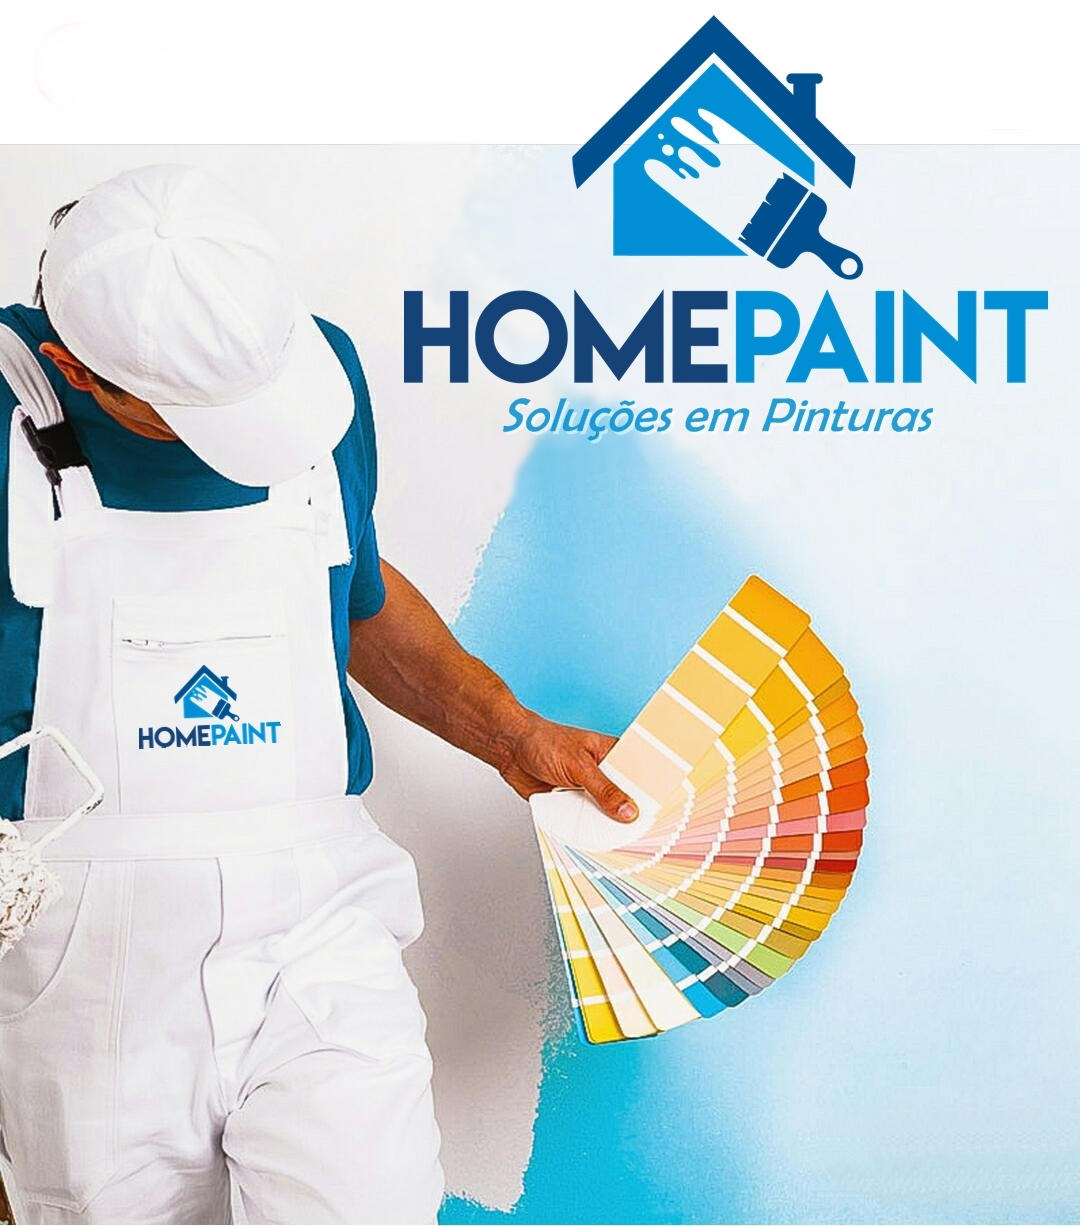 Home Paint